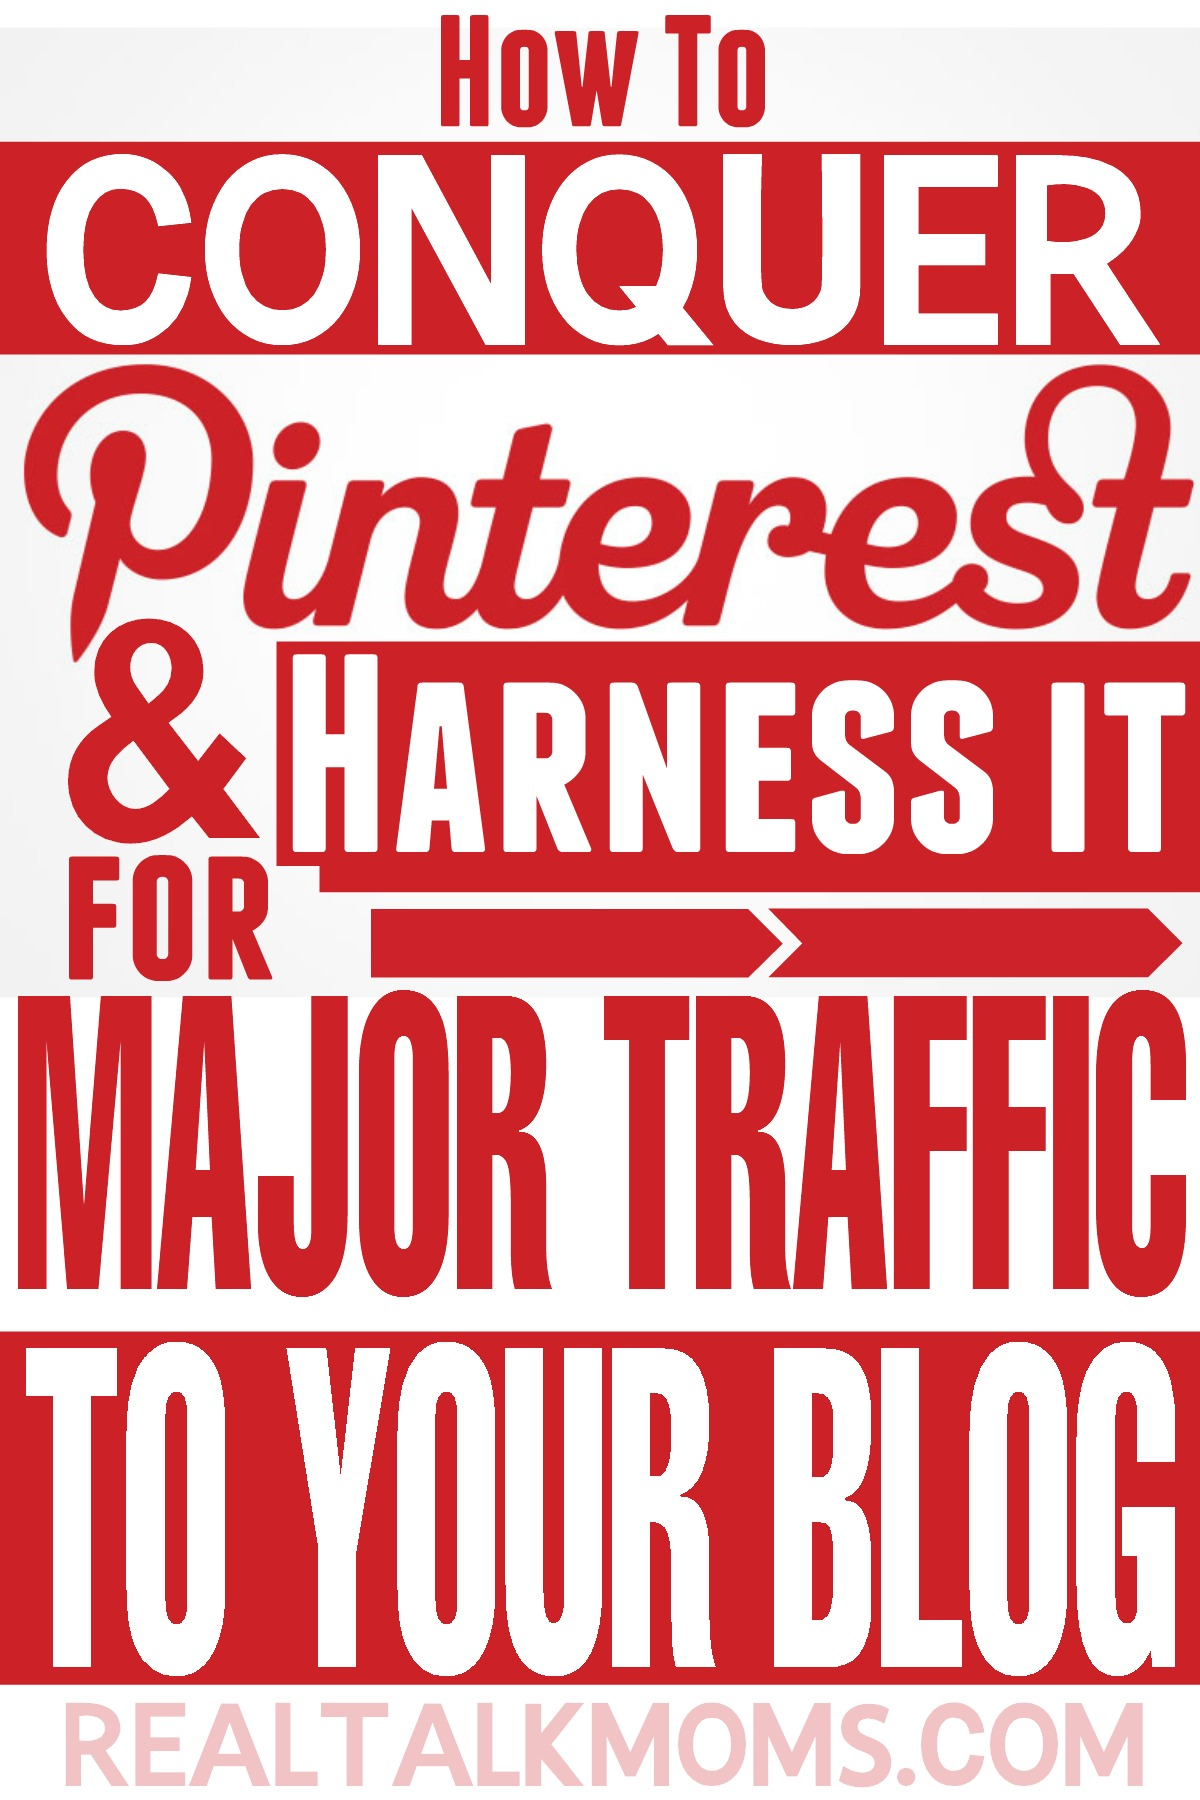 Learn how to make Pinterest work for you and drive major traffic to your blog!